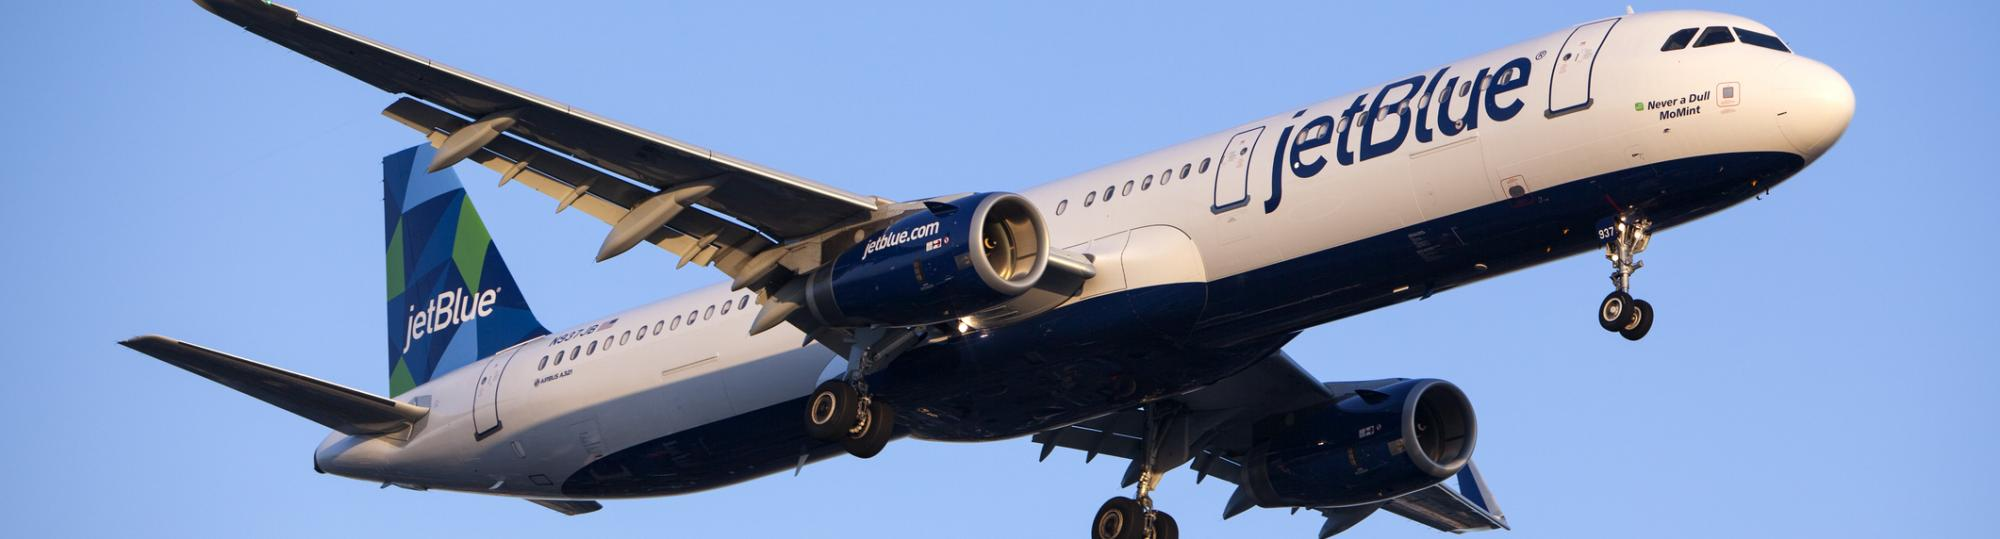 JetBlue Military Discount with Veterans Advantage